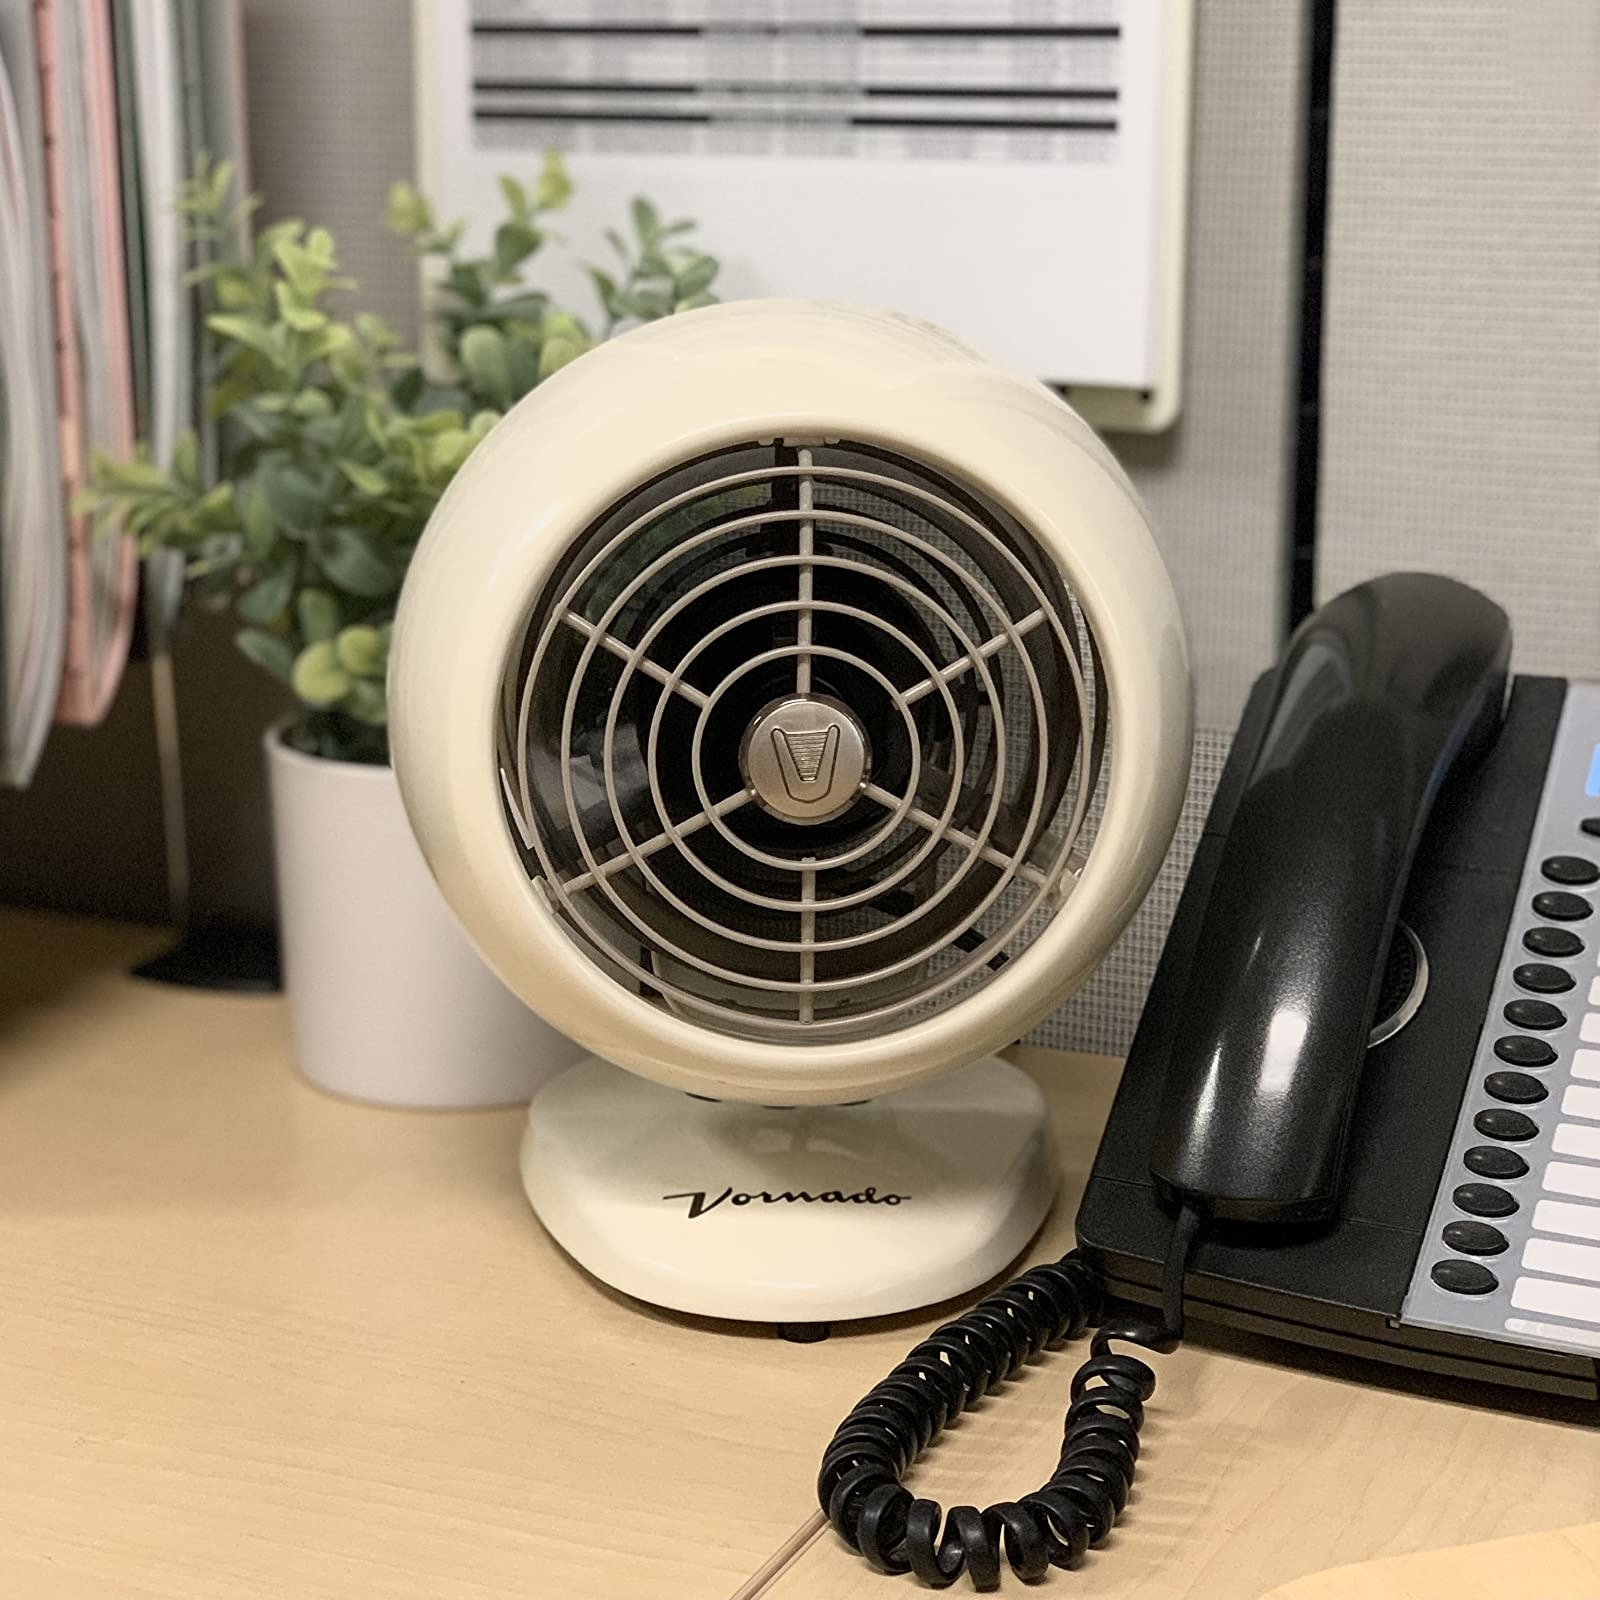 reviewer image of the vintage white vornado personal fan with a classic base on a desk next to an office phone